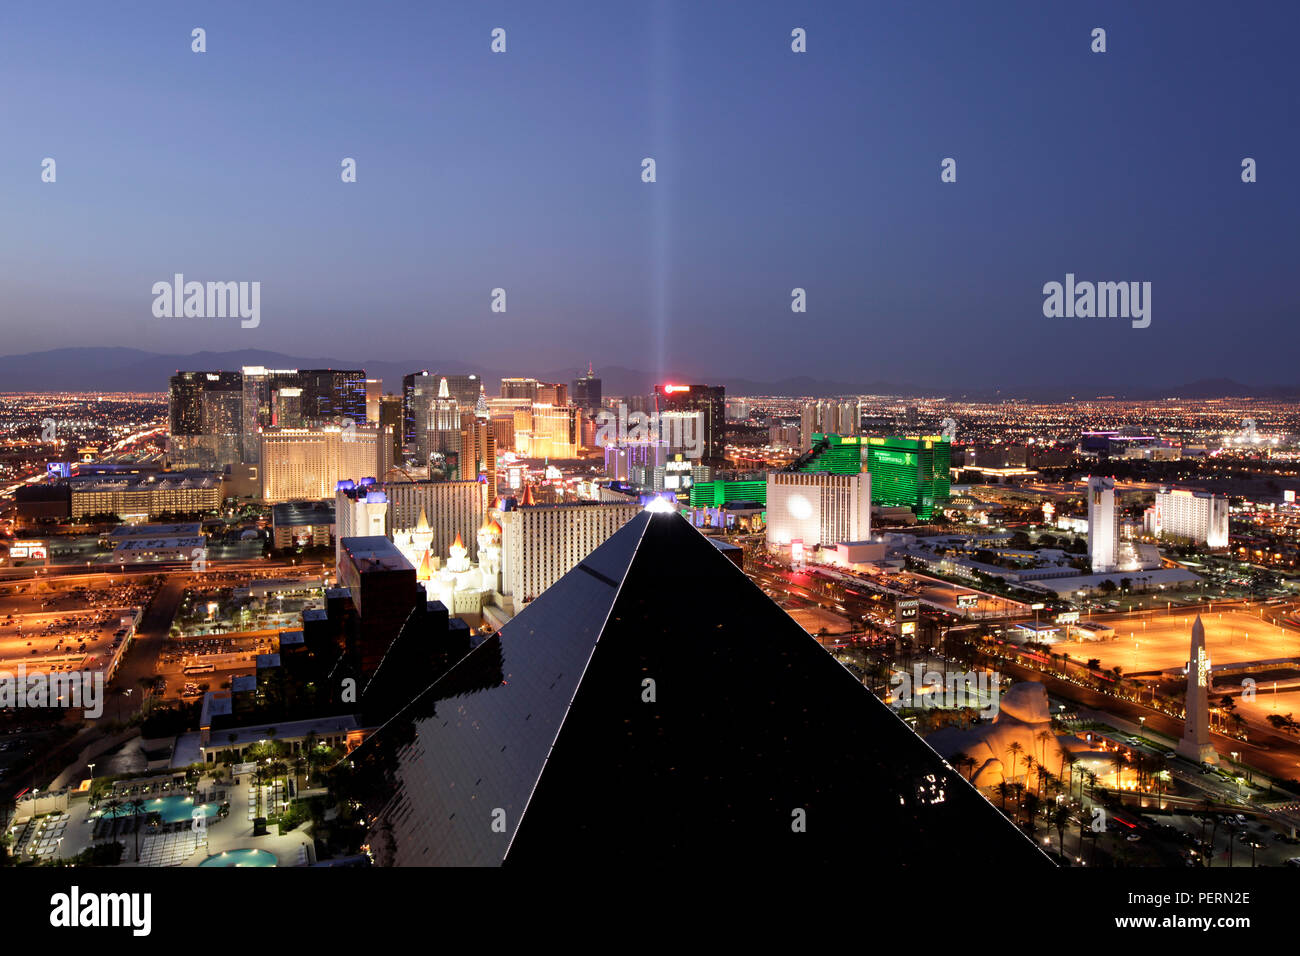 Las Vegas, The Strip at night, Nevada, United States of America - Stock Image